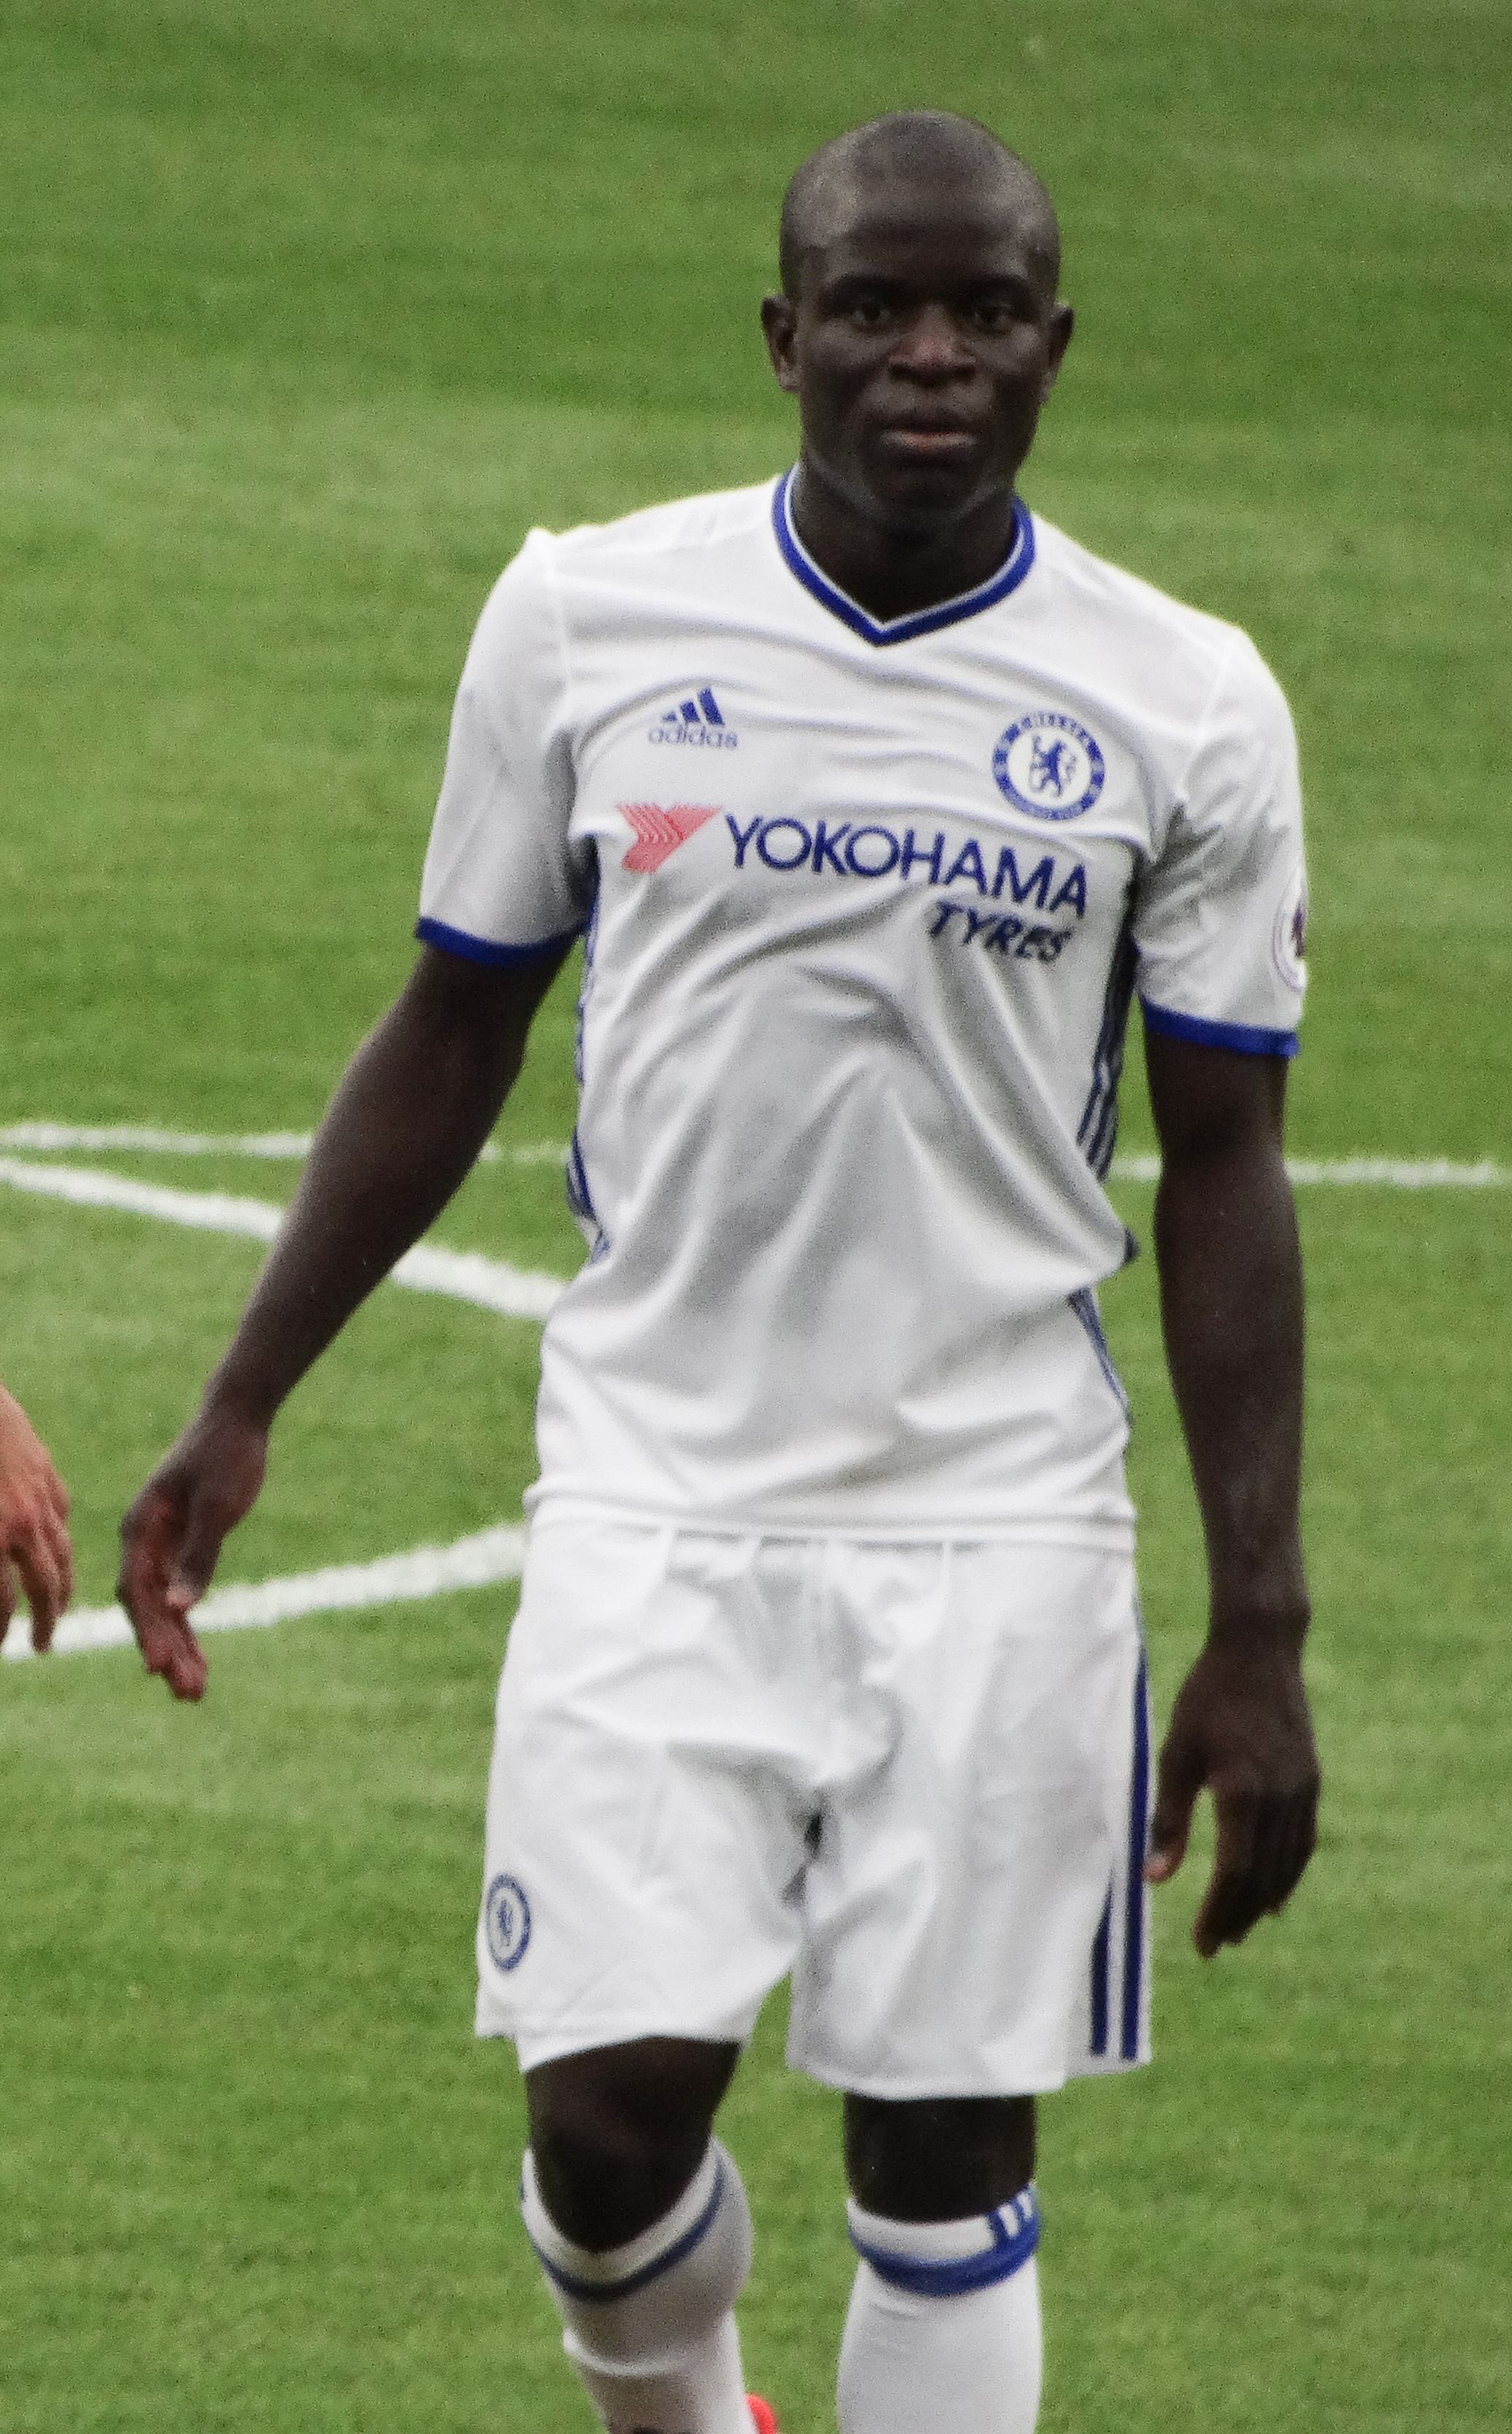 File:Ngolo Kante 2016.jpg - Wikimedia Commons